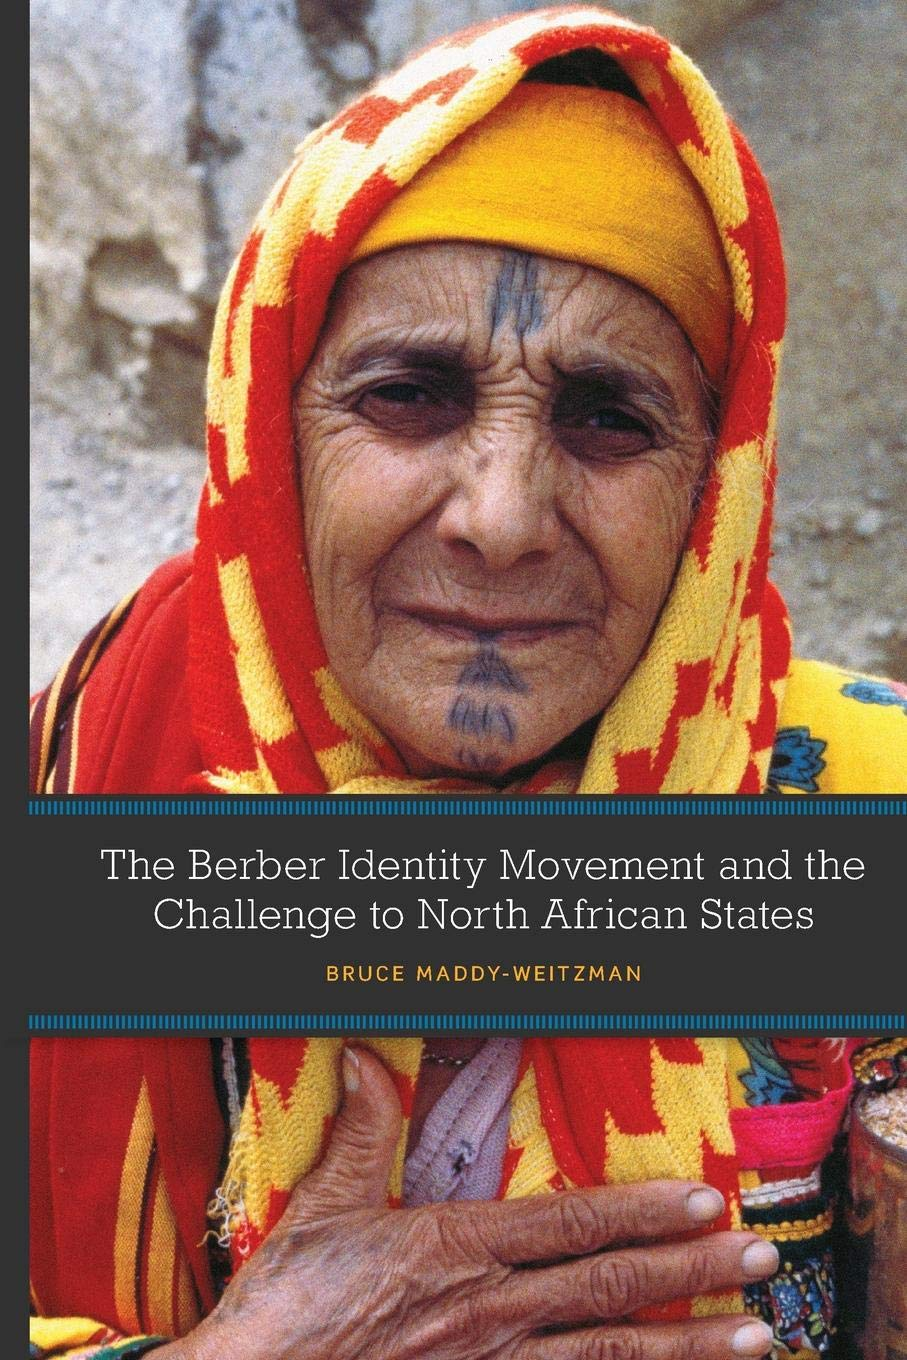 The Berber Identity Movement and the Challenge to North African States